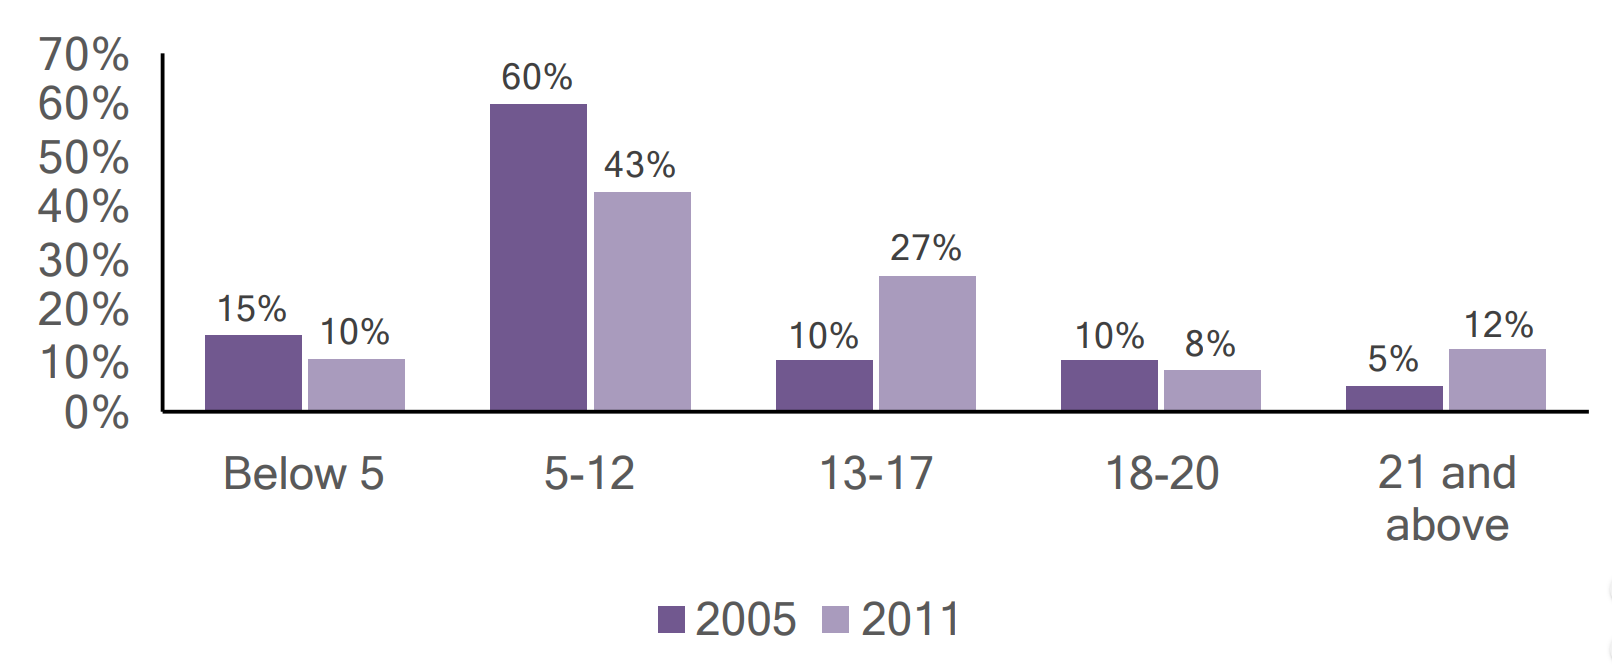 Bar graph of individuals with autism in Fulton county by age, comparing 2005 and 2011 data.